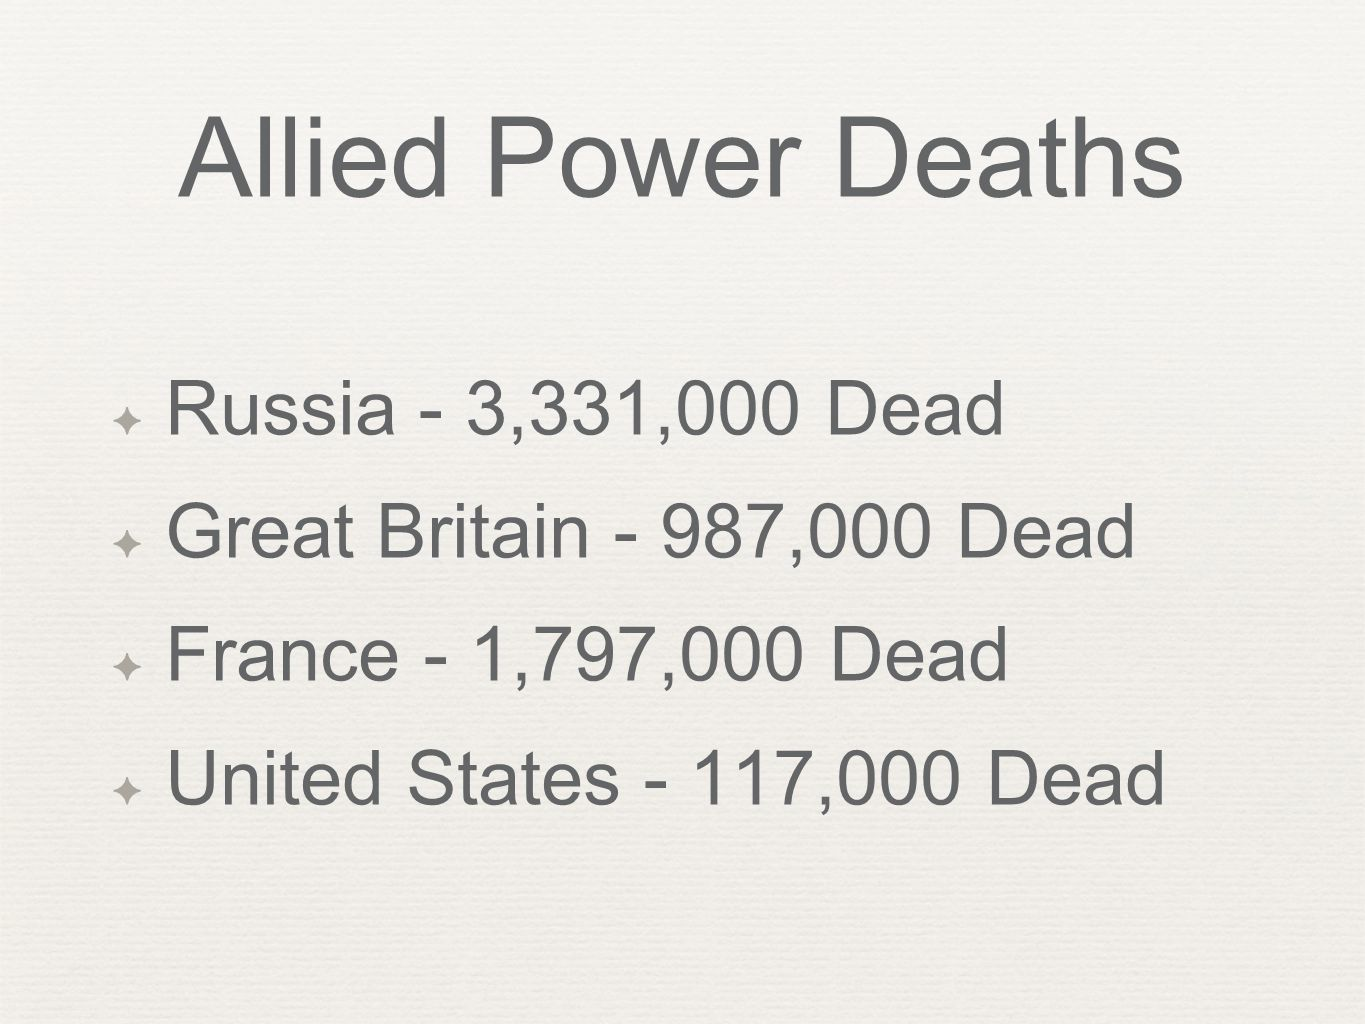 Allied Power Deaths ✦ Russia - 3,331,000 Dead ✦ Great Britain - 987,000 Dead ✦ France - 1,797,000 Dead ✦ United States - 117,000 Dead